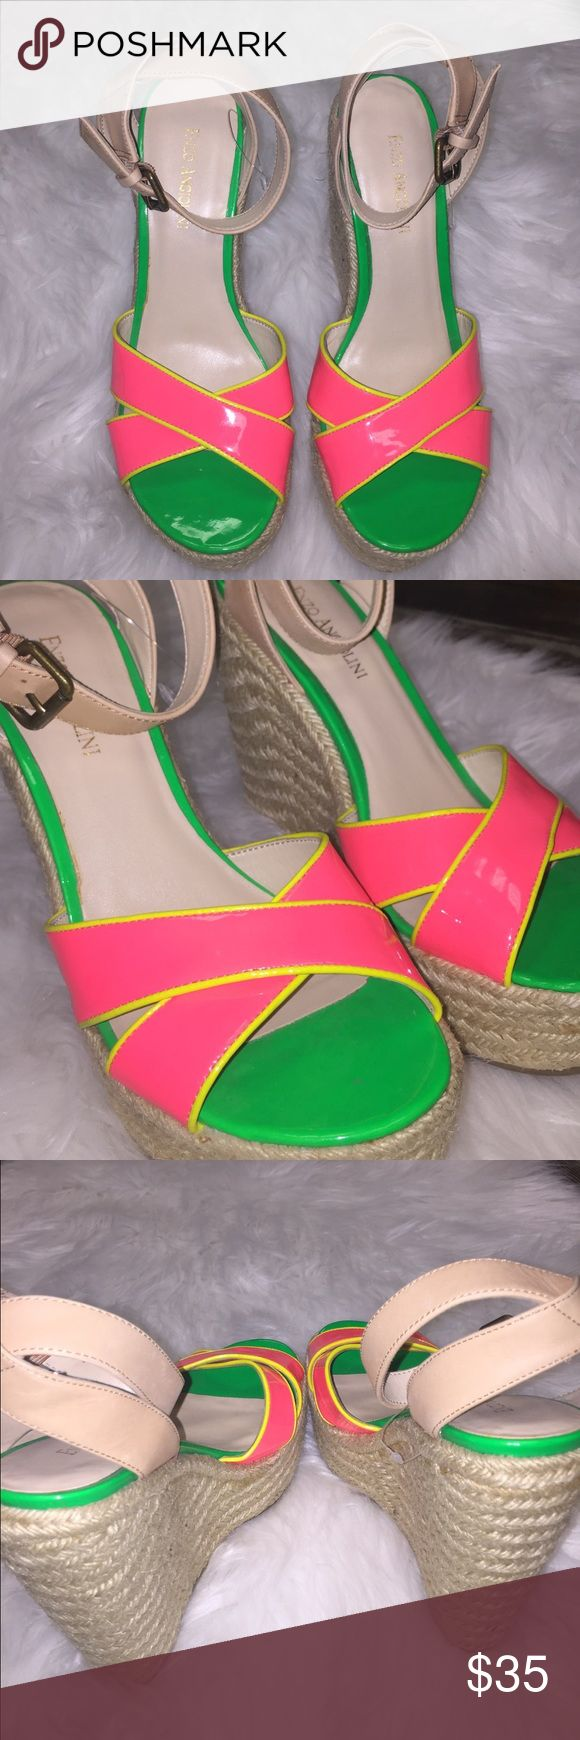 Enzo Angiolini Normas Canadian hot pink wedges 🔥 Three colored wedge- lime green, lemony yellow and hot pink, with tanned colored ankle straps! 😜🛍 Enzo Angiolini Shoes Wedges